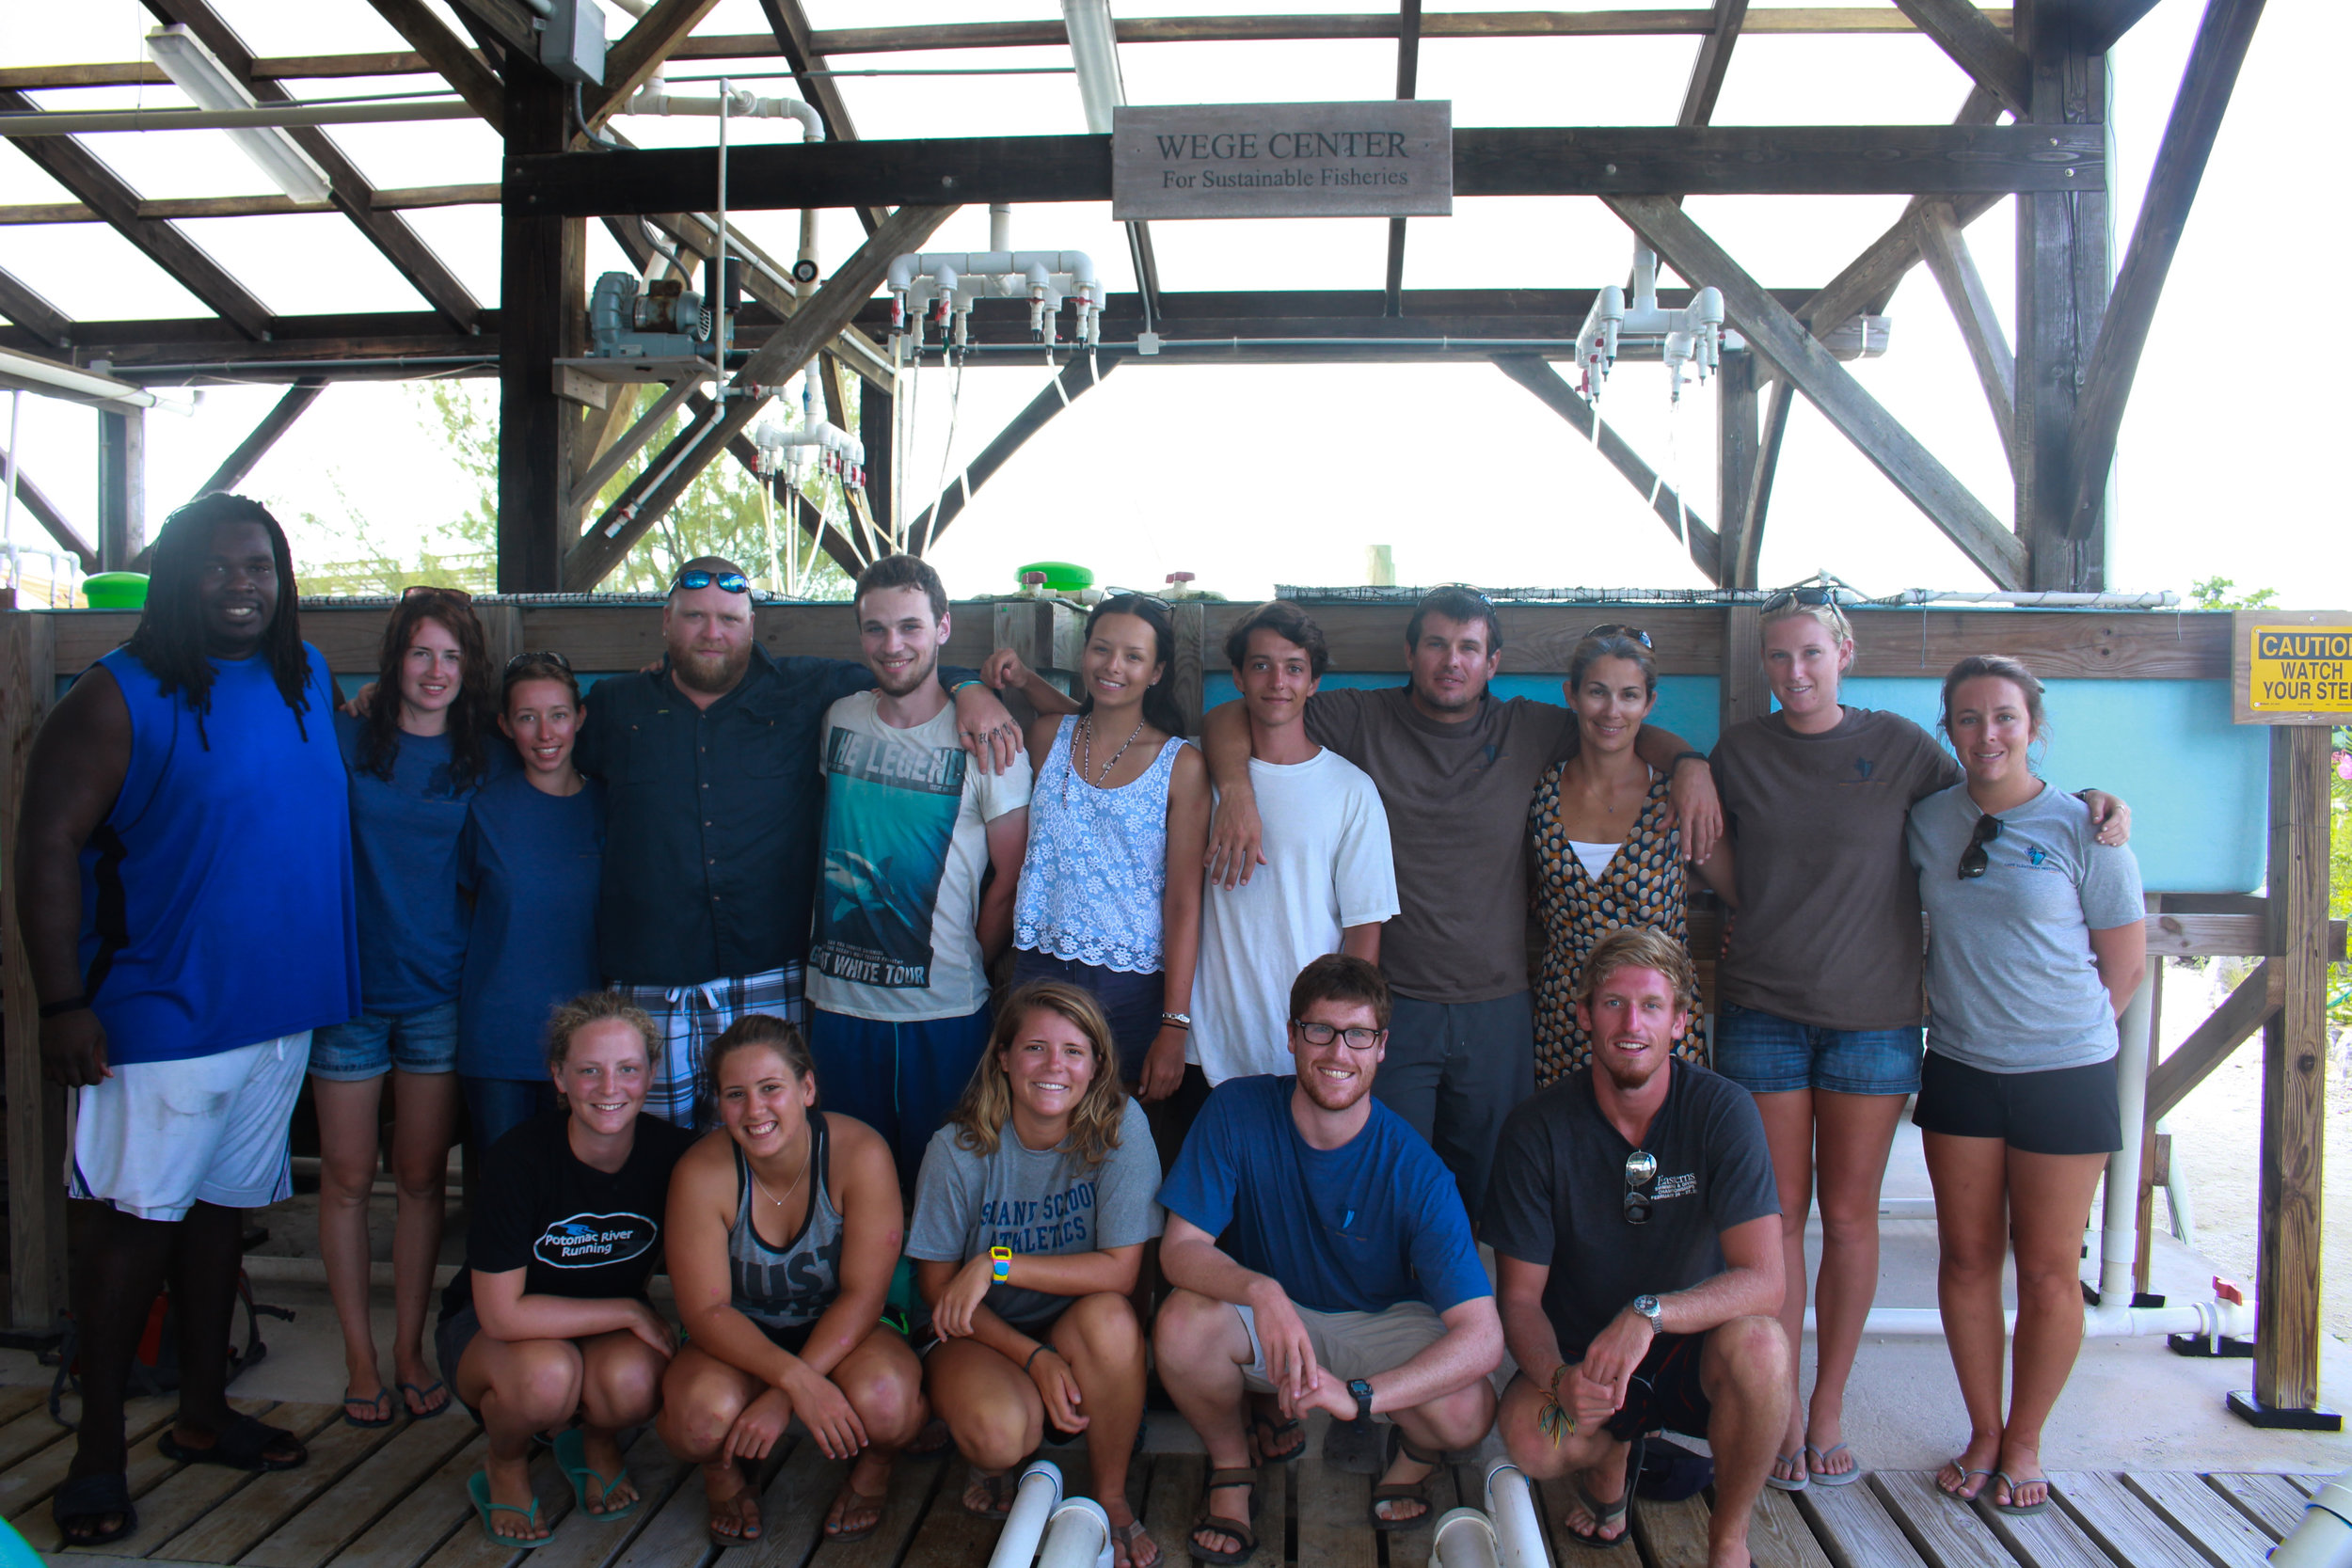 Cape Eleuthera Institute research team gathers at the Wege Center for Sustainable Fisheries to celebrate the life of Peter Wege and give thanks for his generous support.